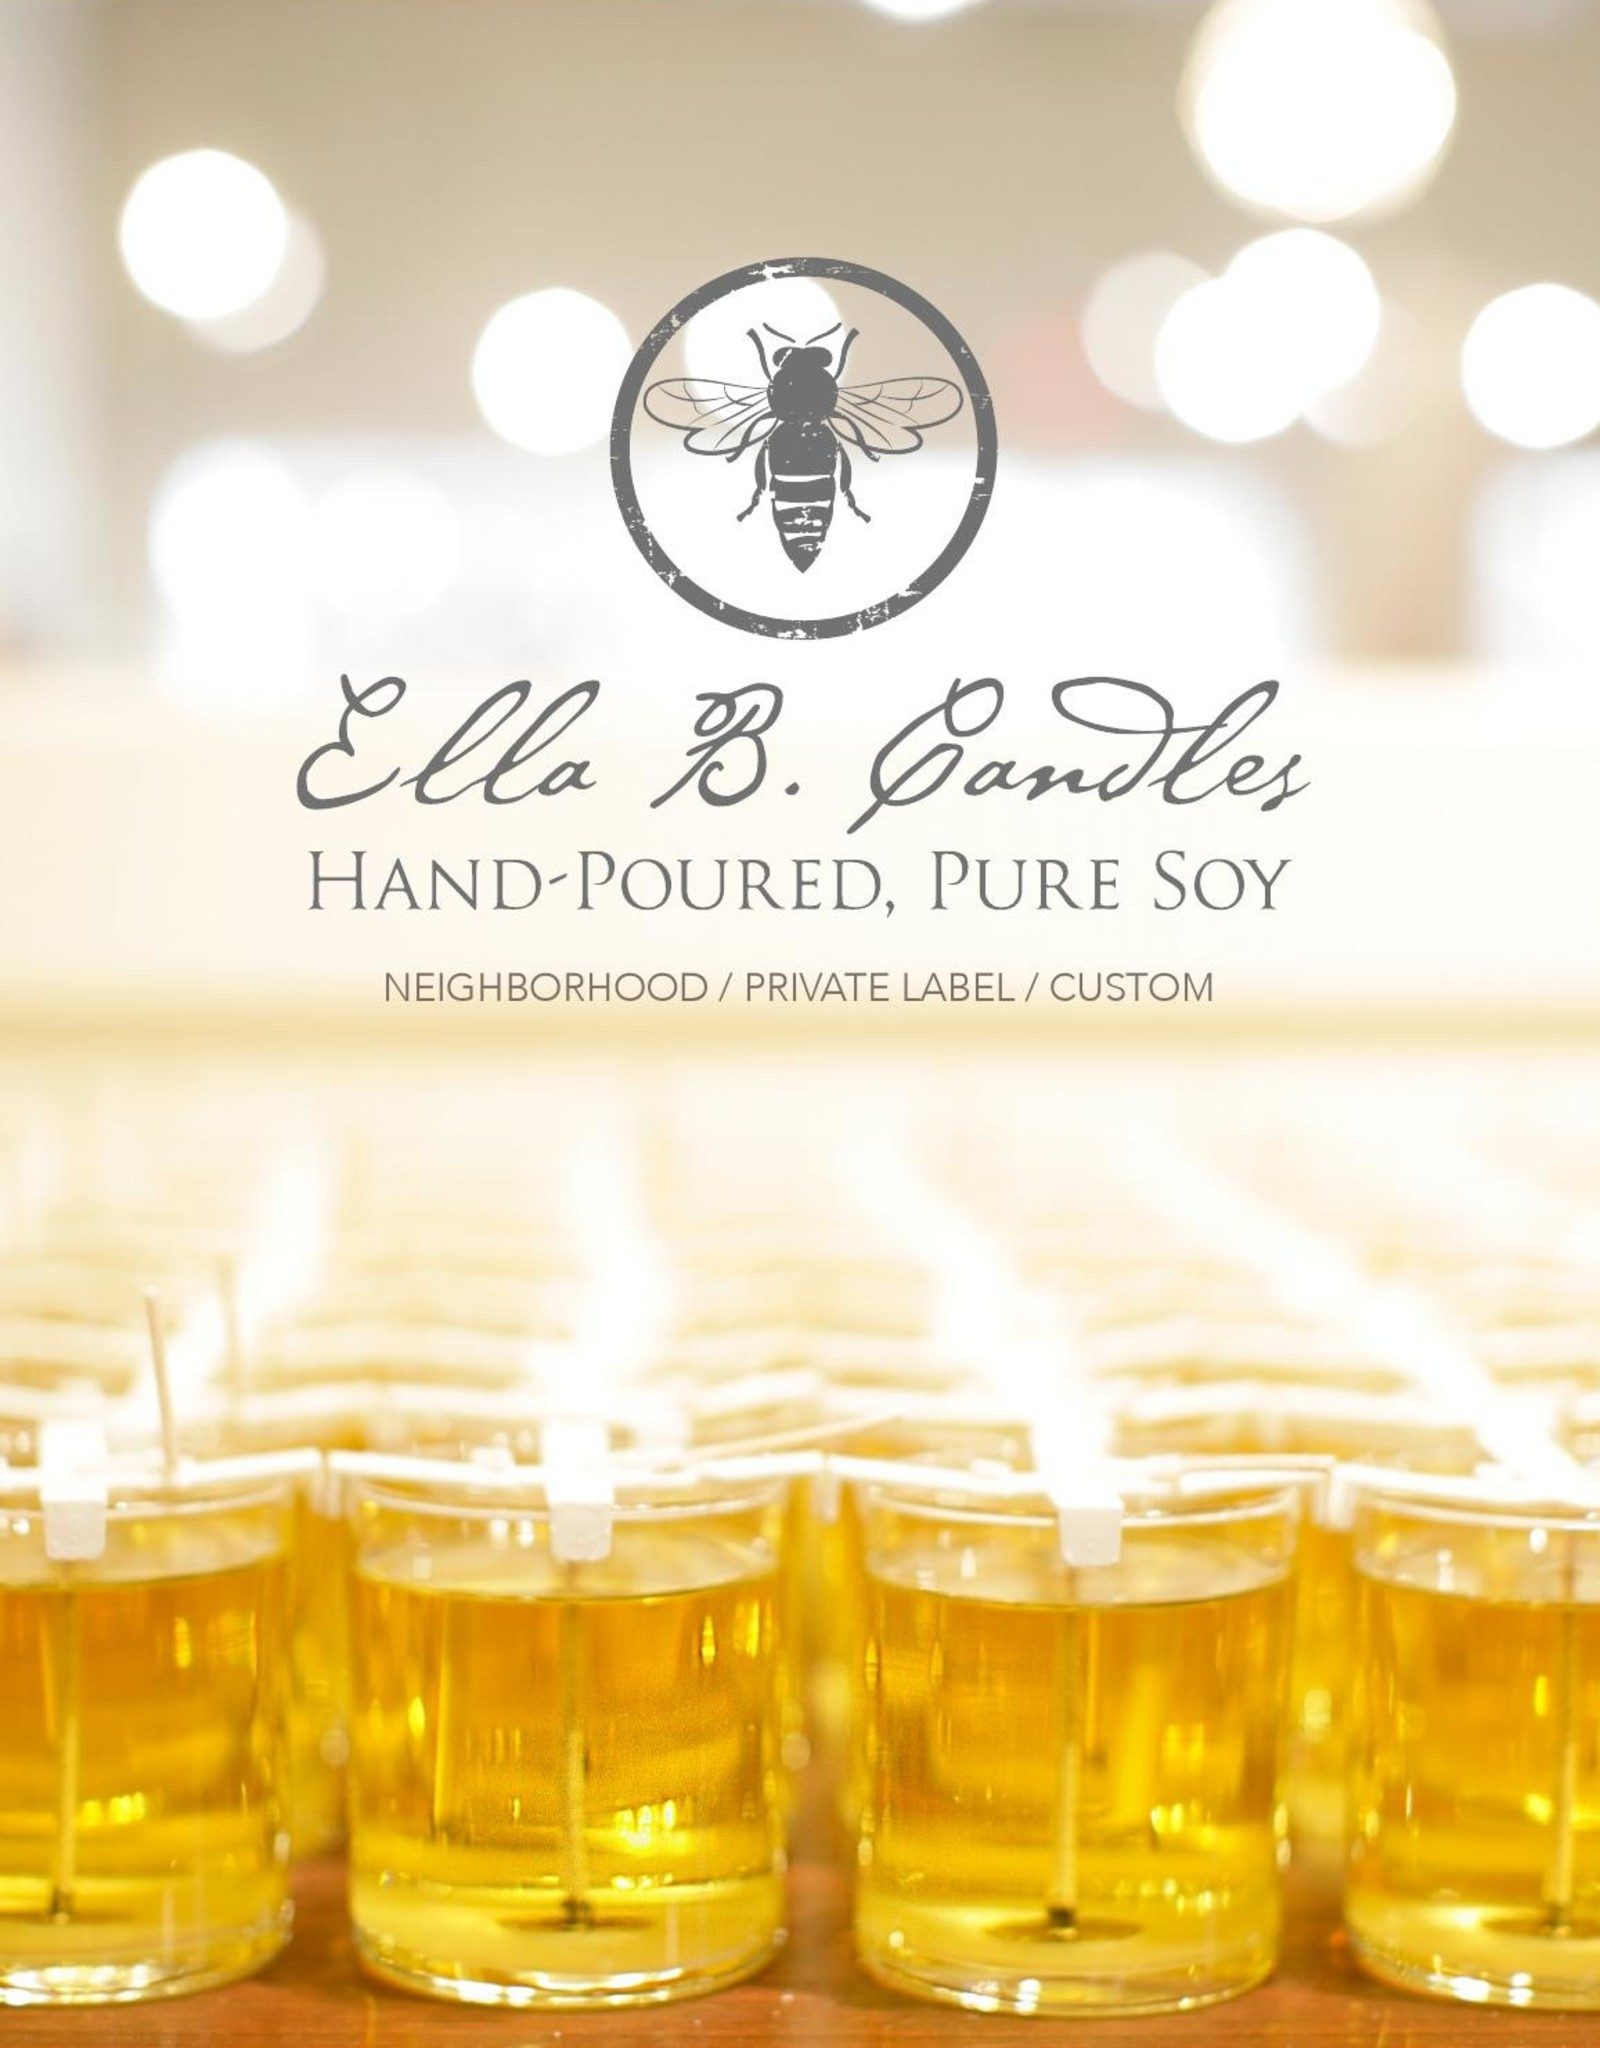 Ella B candles Sweet Friend Hand Poured Soy Candle by Ella B Candles